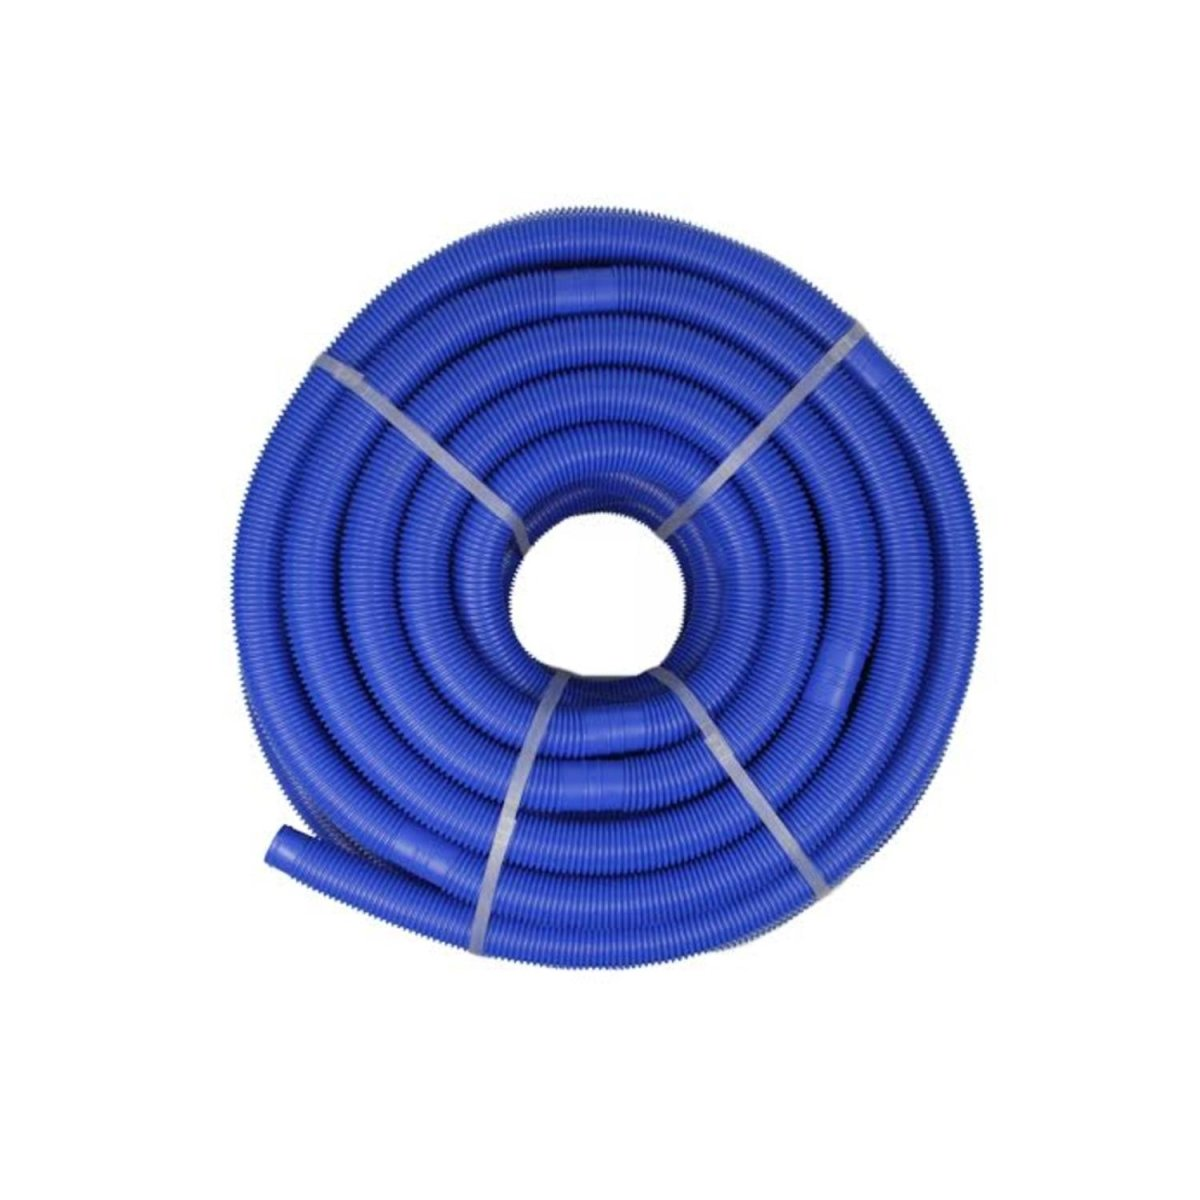 Blue Blow-Molded PE In-Ground Swimming Pool Cuttable Vacuum Hose - 147.5' x 1.25''